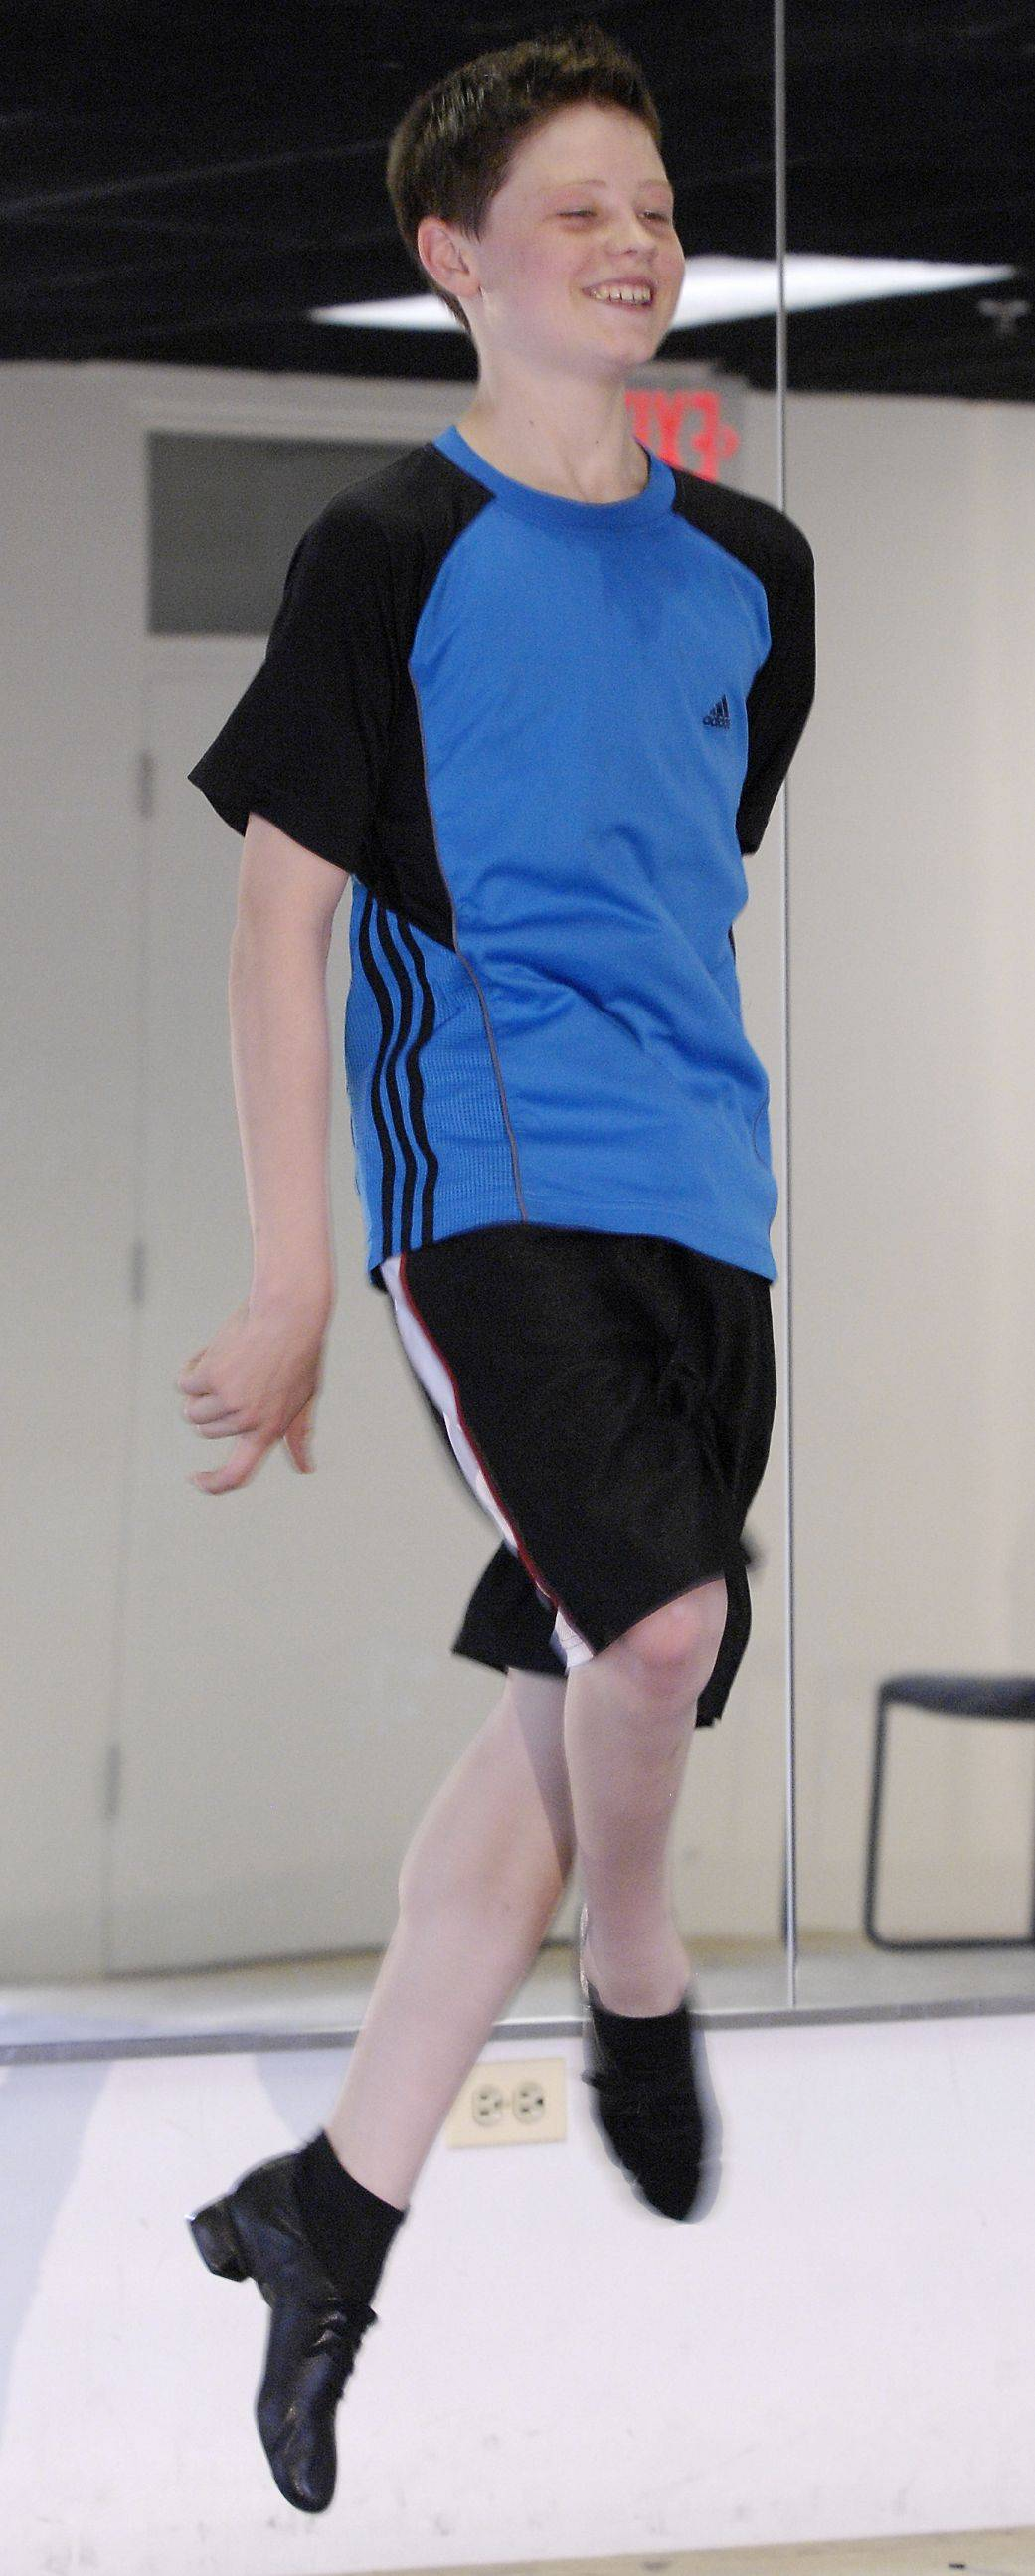 Peter Dziak, 14, of Villa Park practices at Trinity Irish Dancers in Elmhurst. Dziak successfully defended his world title to secure his second gold medal at the World Irish Dancing Championships in Belfast, Ireland.$PHOTOCREDIT_ON$$PHOTOCREDIT_OFF$$PHOTOCREDIT_ON$$PHOTOCREDIT_OFF$$PHOTOCREDIT_ON$Mark Black/mblack@ dailyherald.com$PHOTOCREDIT_OFF$